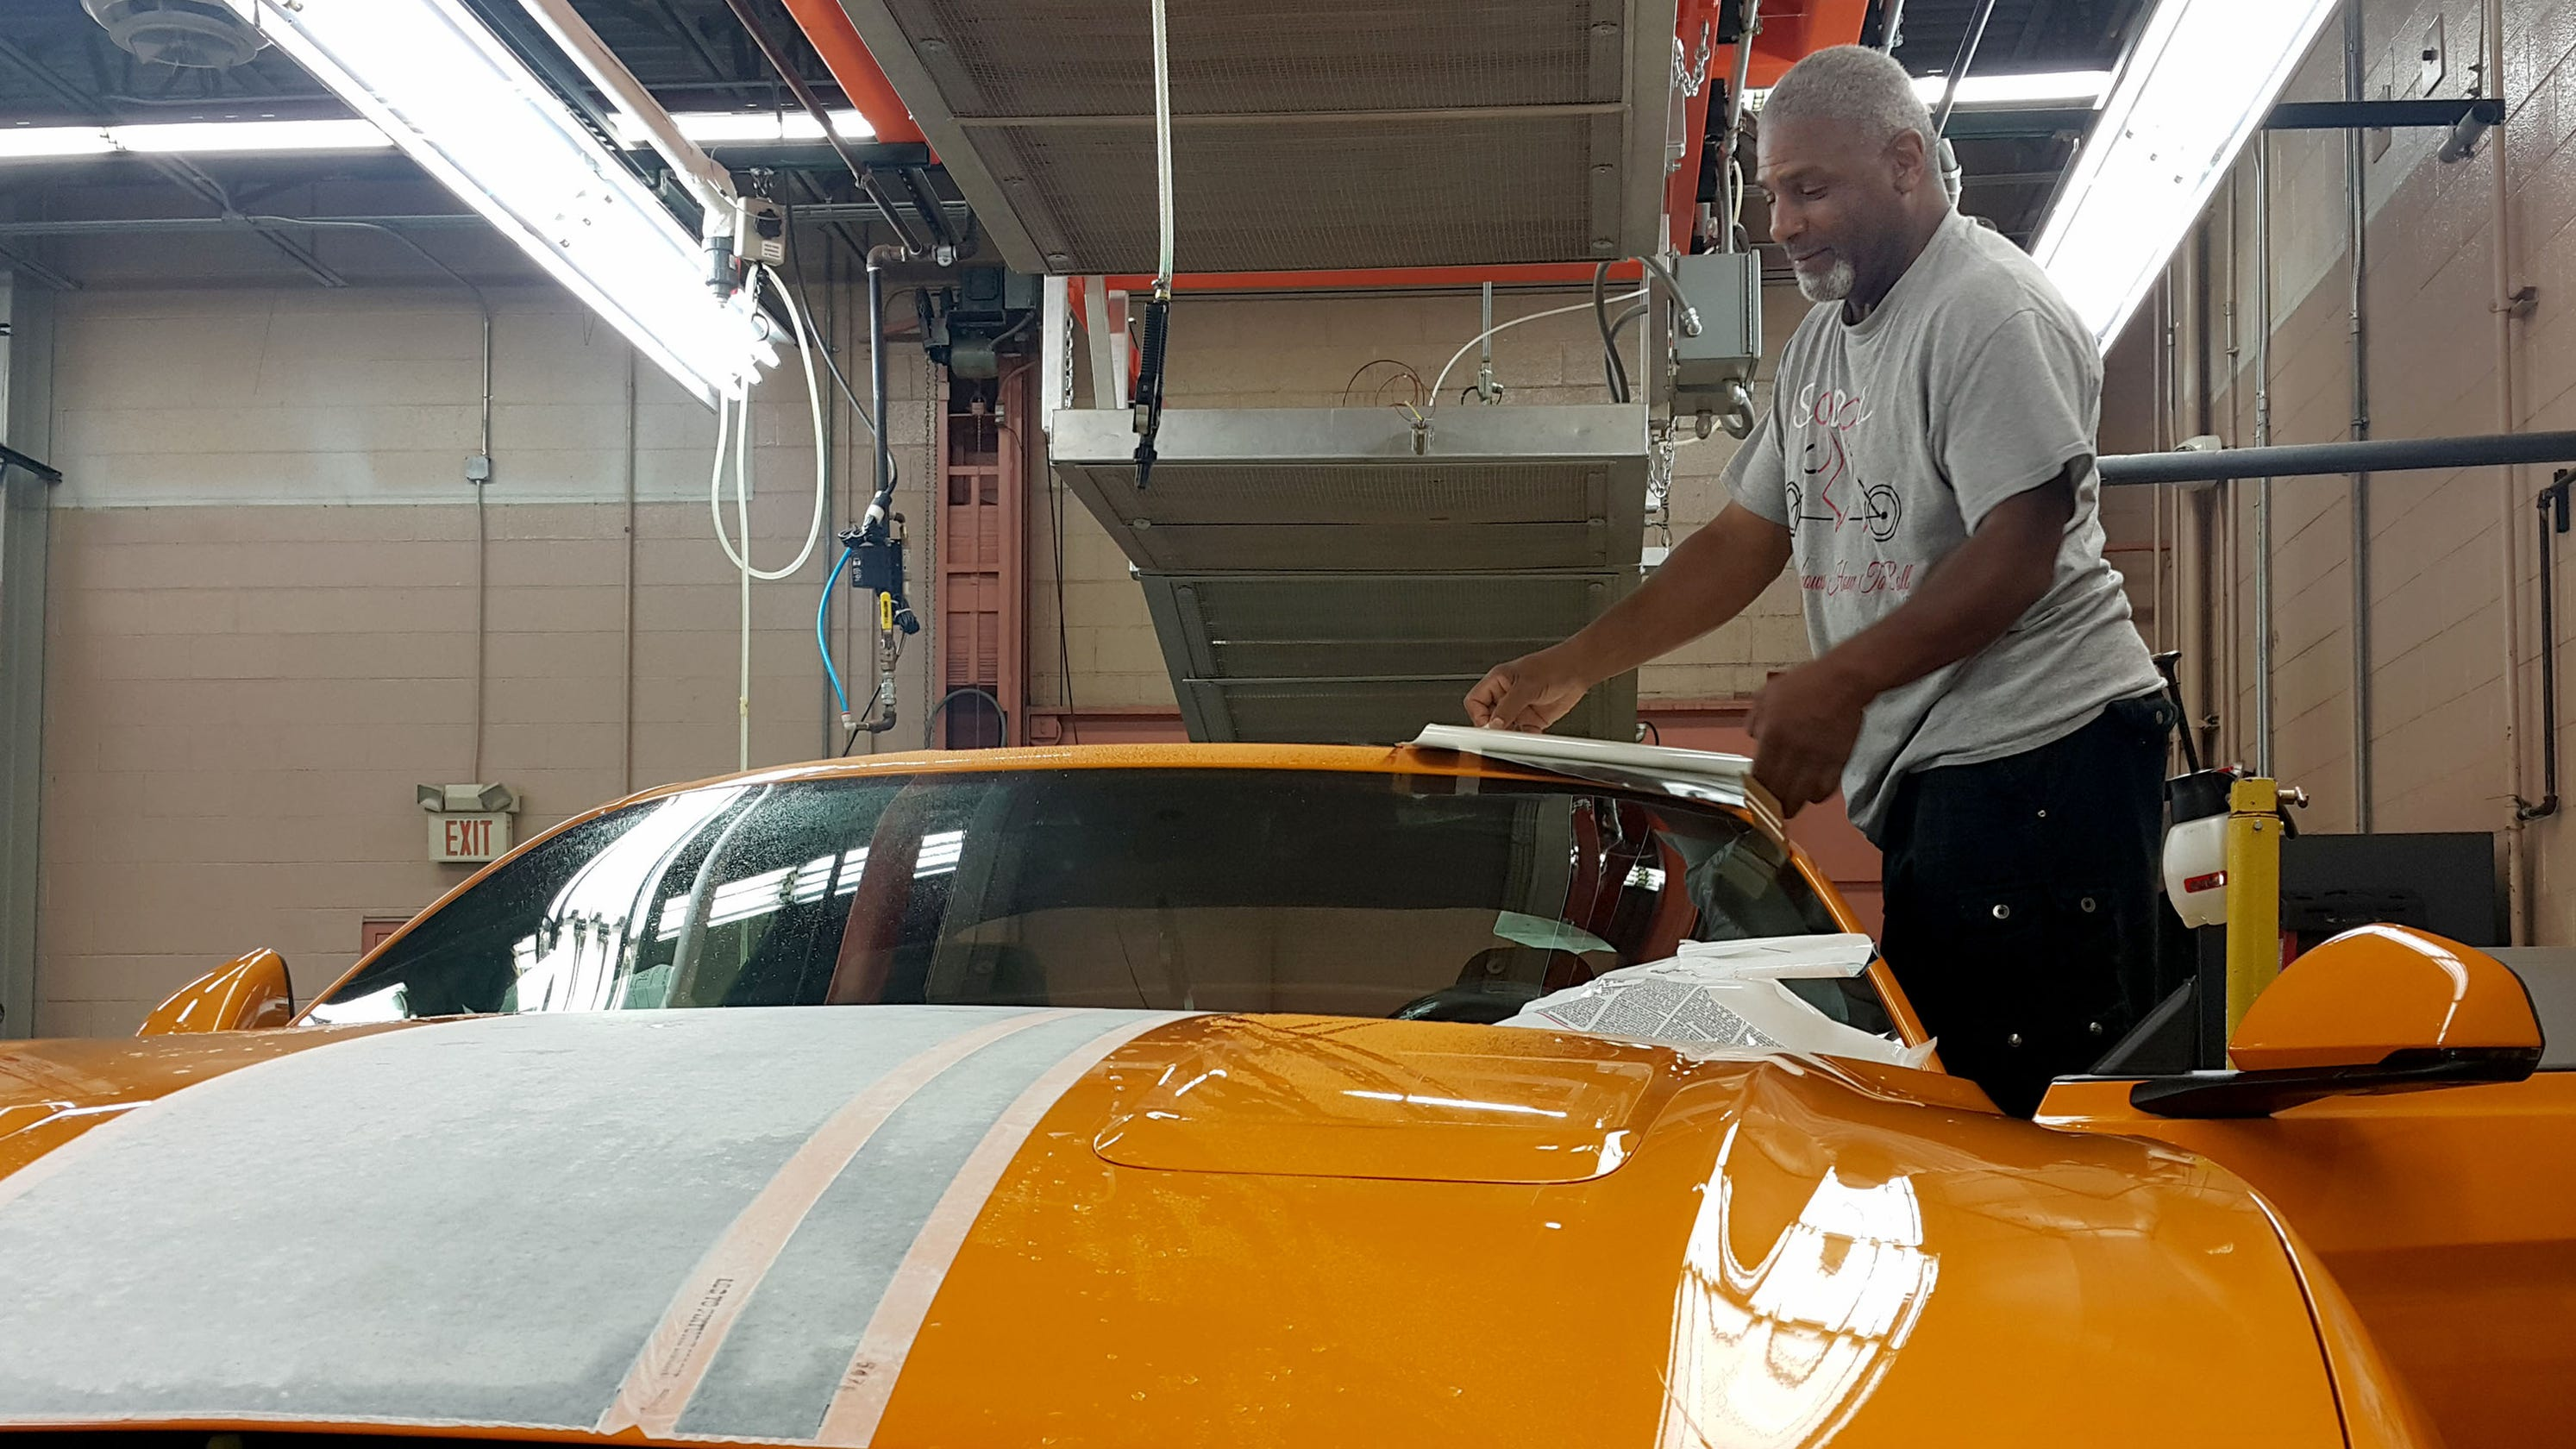 10 millionth mustang shatters sports car record ford to celebrate